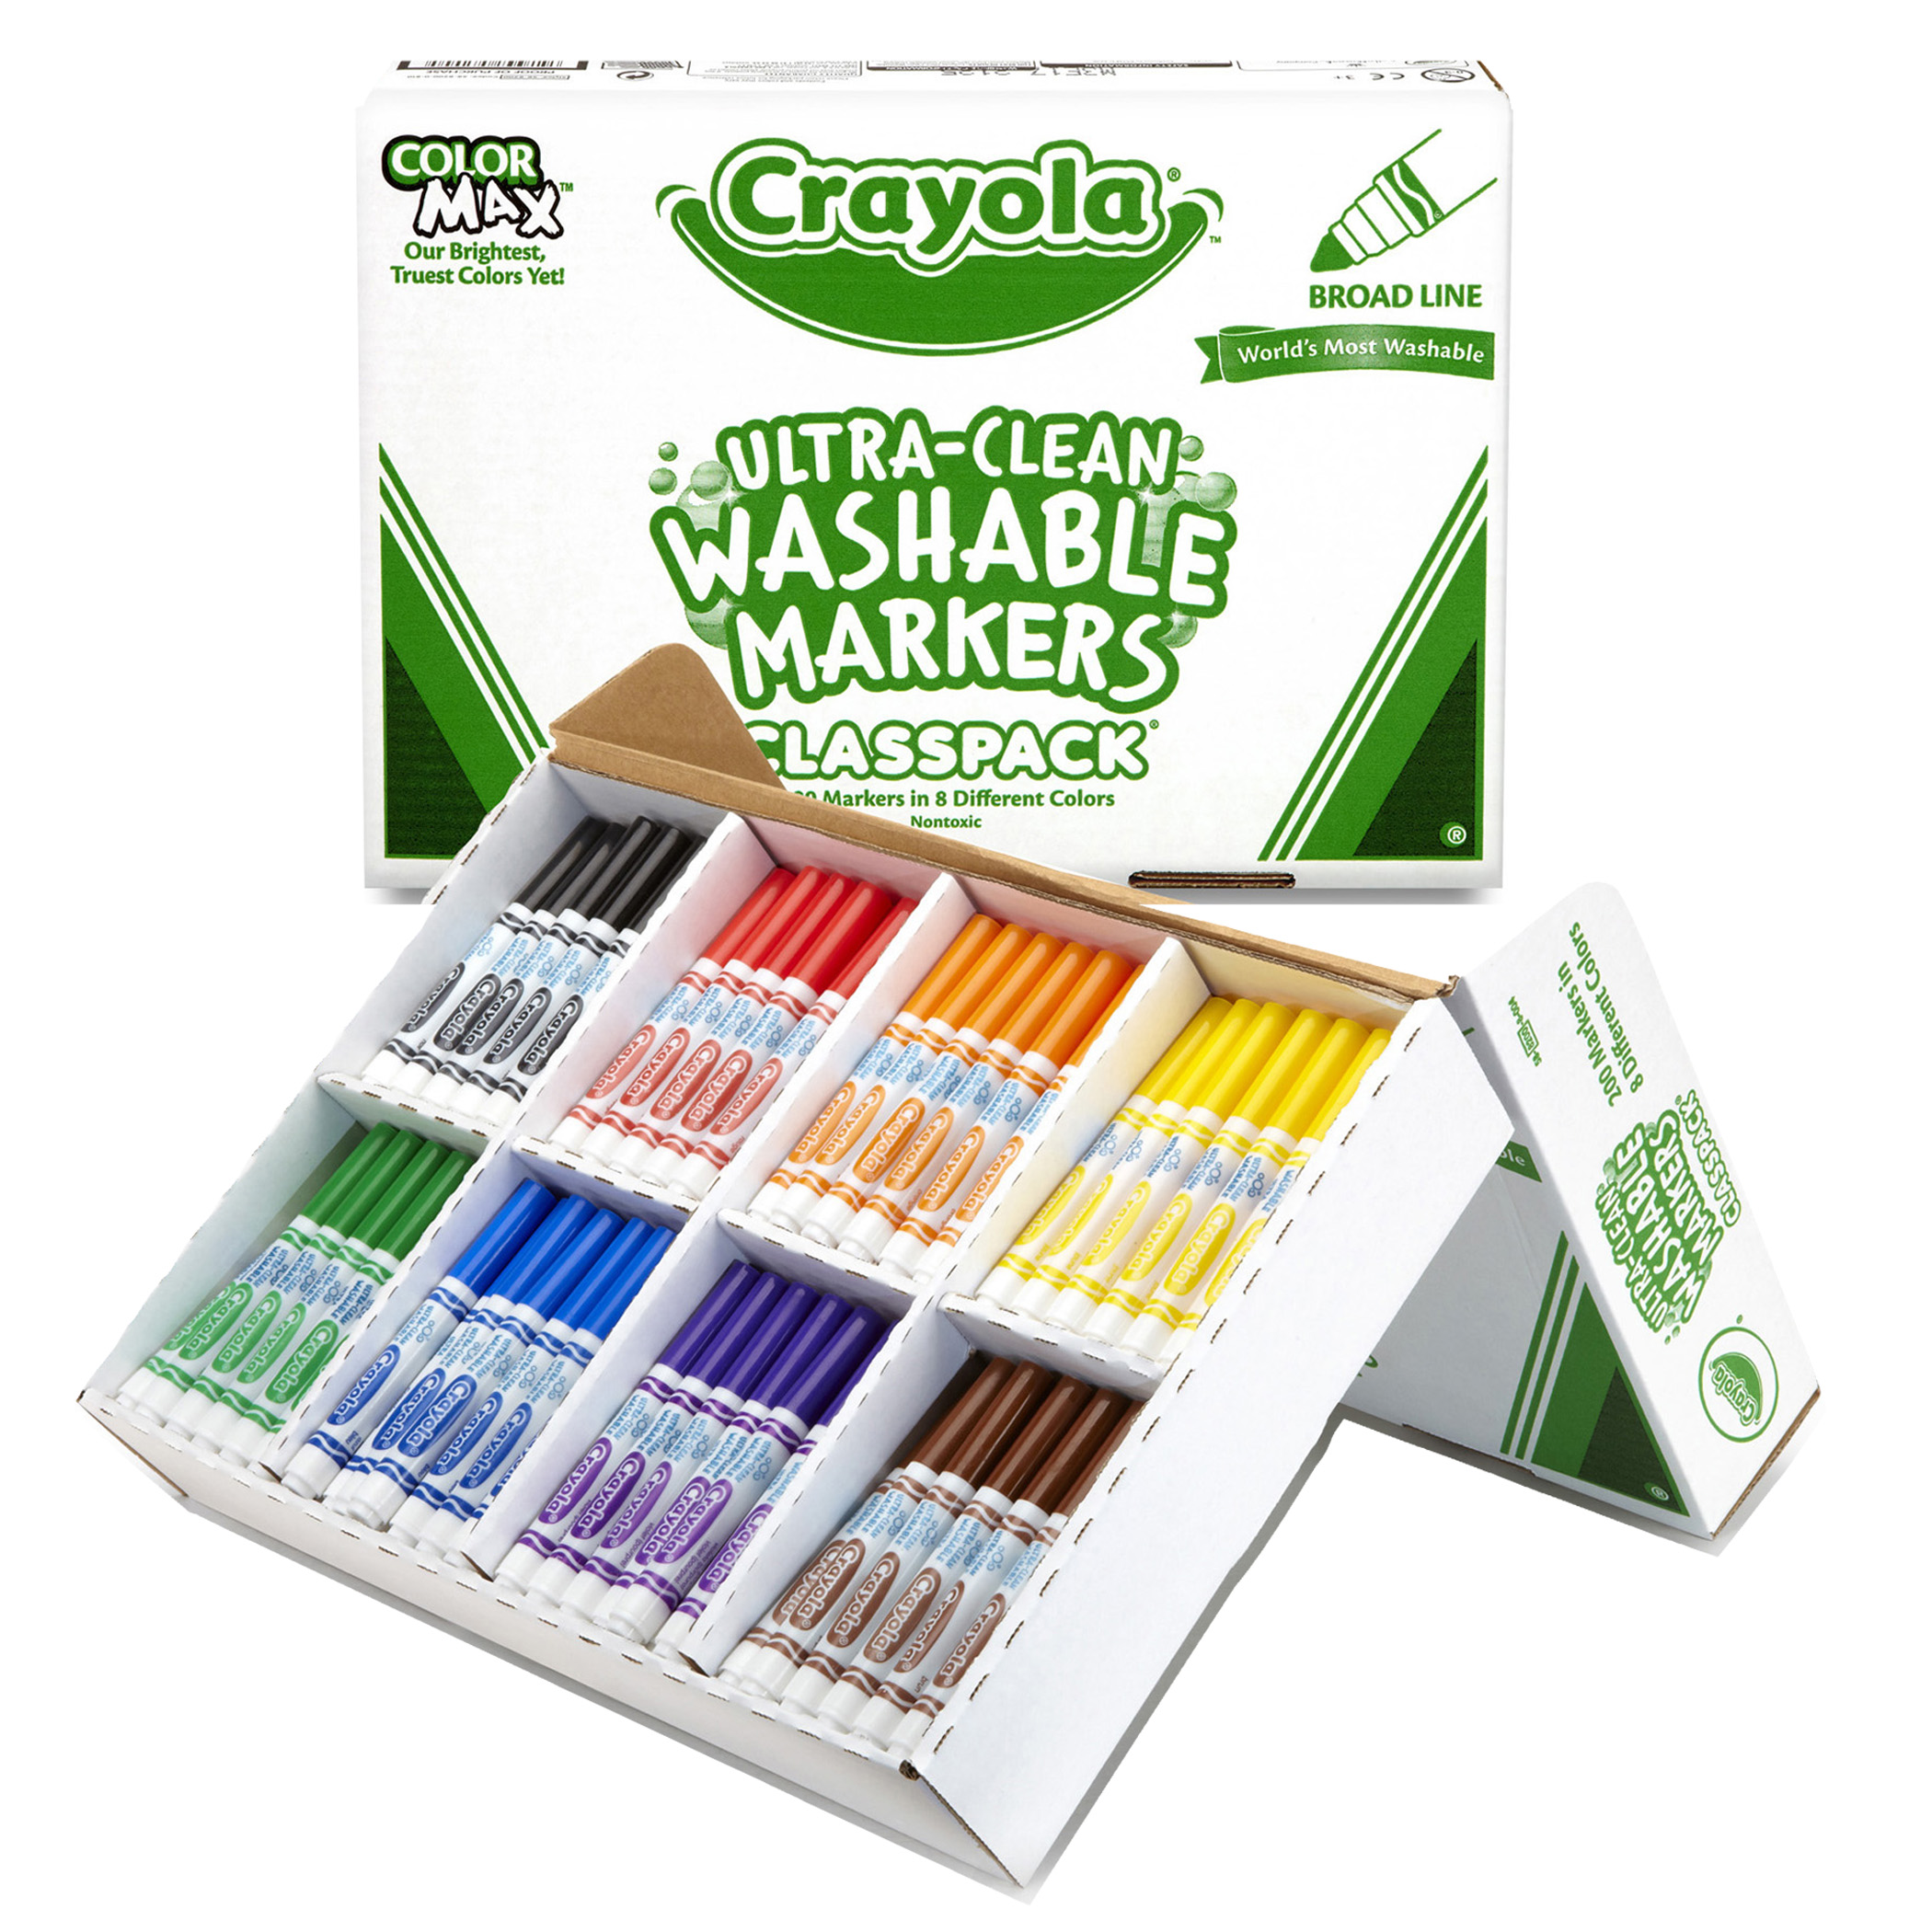 Crayola® Ultra-Clean Washable Markers Classpack, Broad Line, 8 Colors, Pack of 200